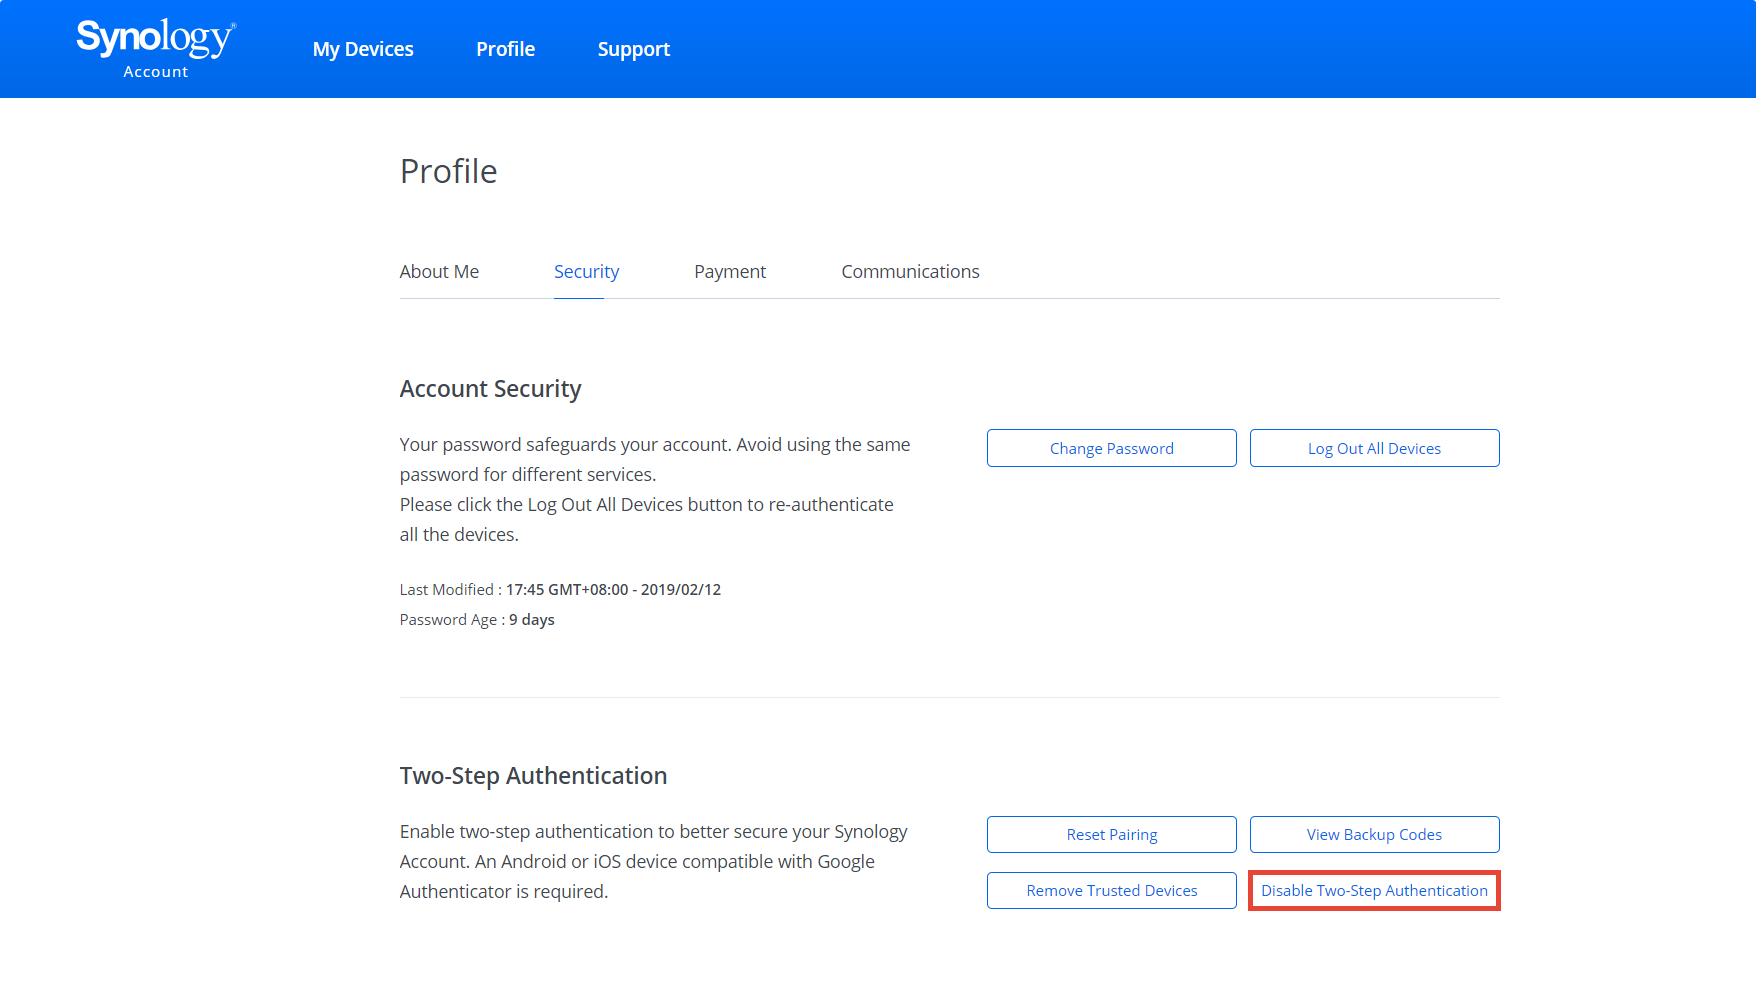 How to troubleshoot Synology Account access issues